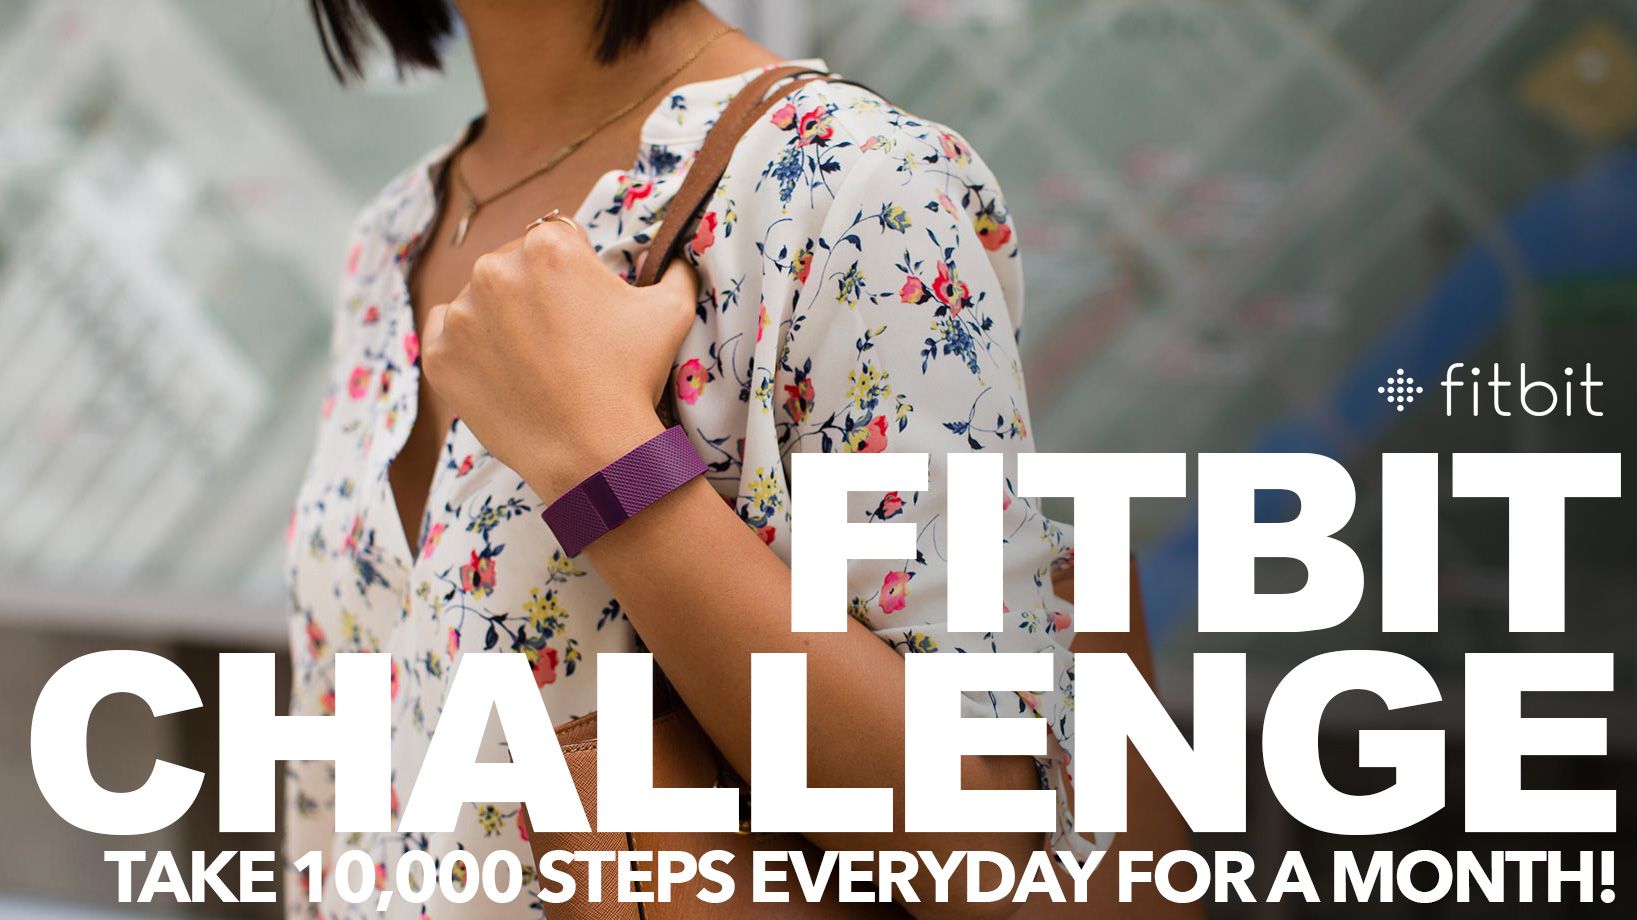 Fitbit Challenge